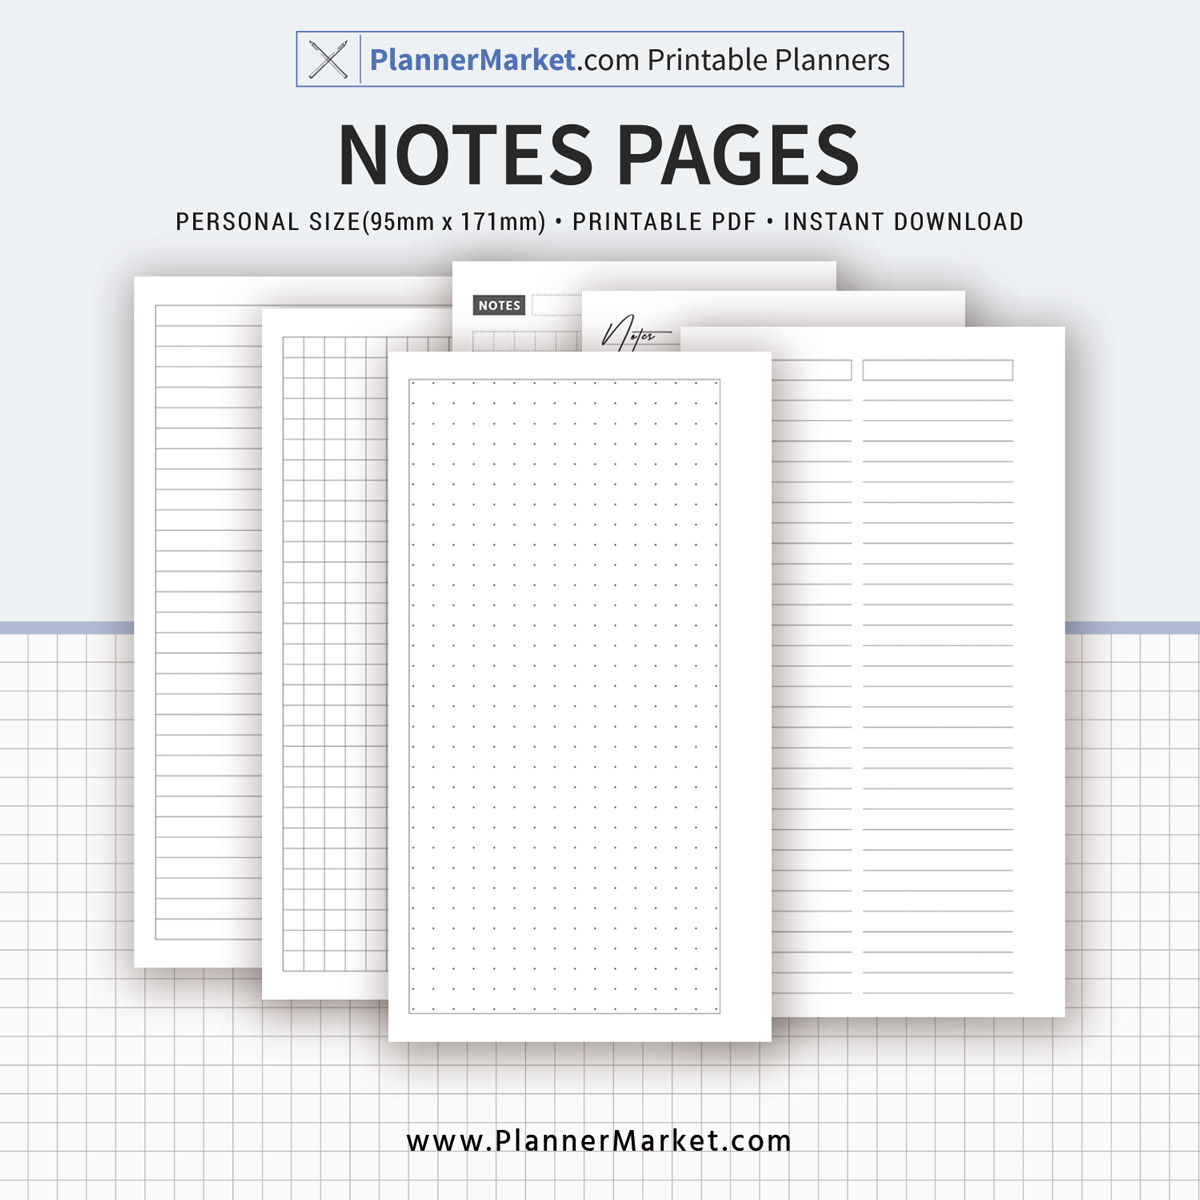 picture relating to Printable Notes identified as Notes Internet pages, Laptop Web pages, Notes Template,Notes Planner, Specific Measurement, Printable Planner Inserts, Planner Refills, Prompt Down load